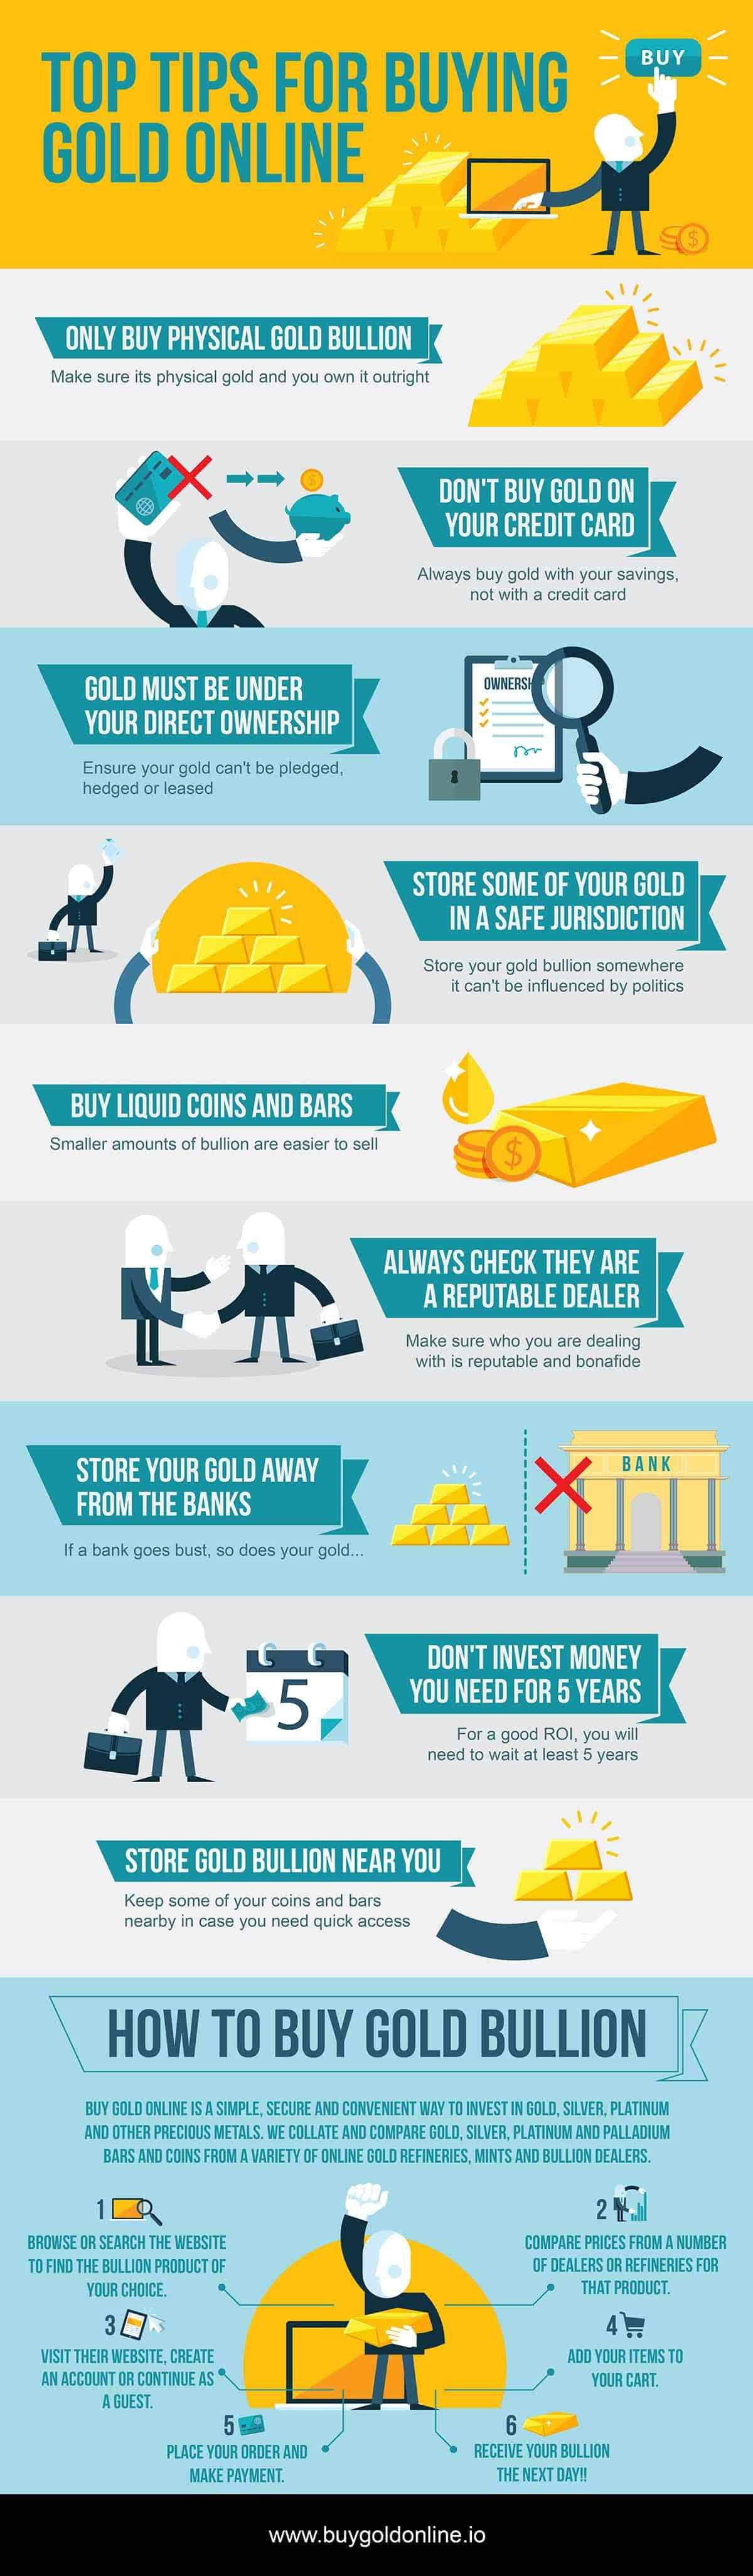 Top Tips For Buying Gold Online #infographic